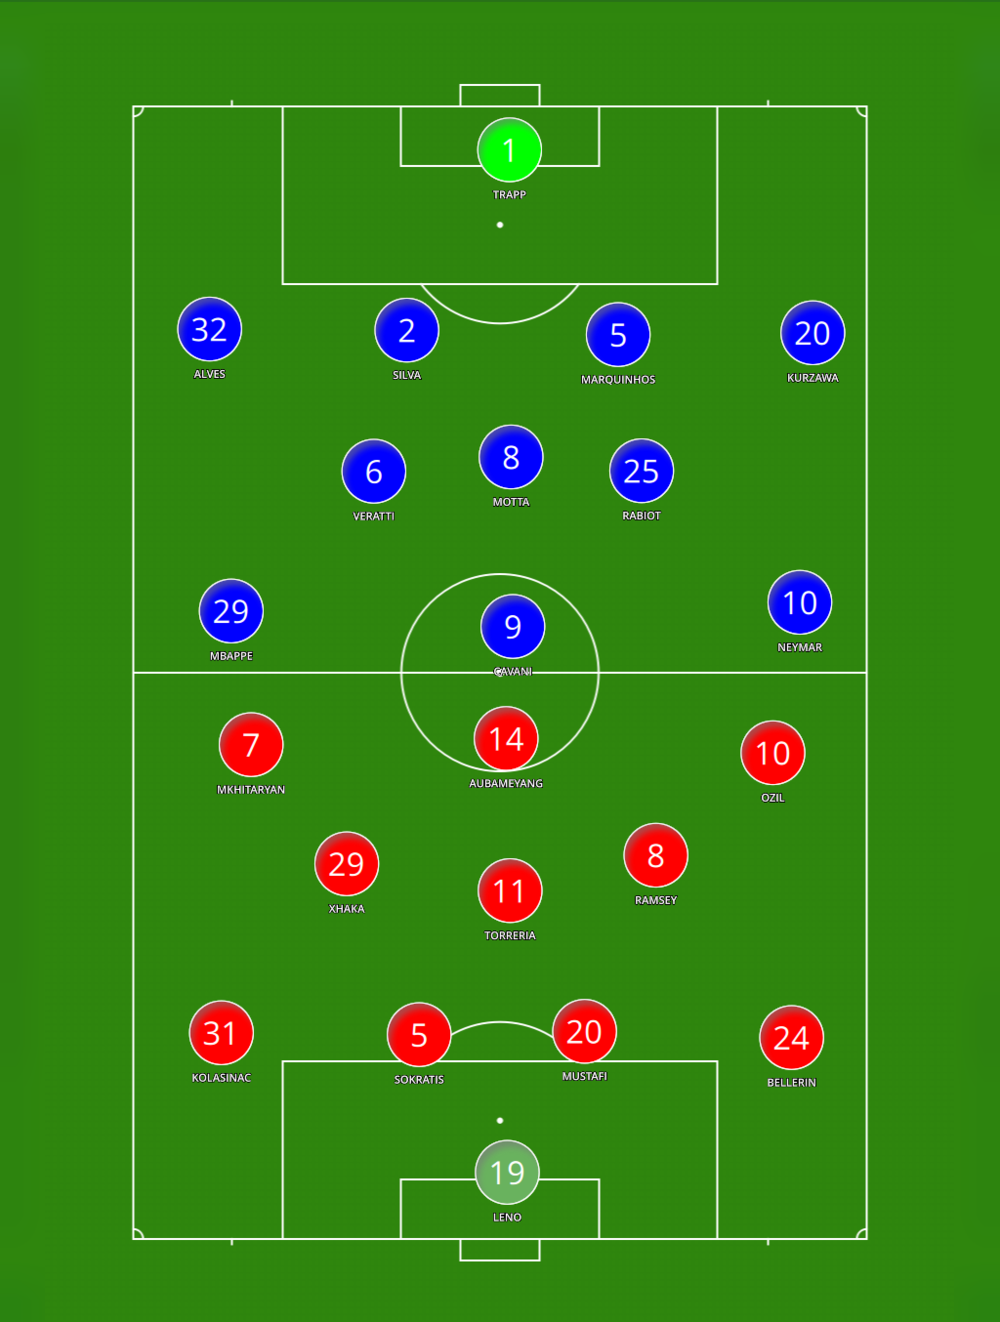 PSG V Arsenal - What Unai Emery's PSG side mirrored with his Arsenal squad may look like. Will we see Mesut Ozil off the right?